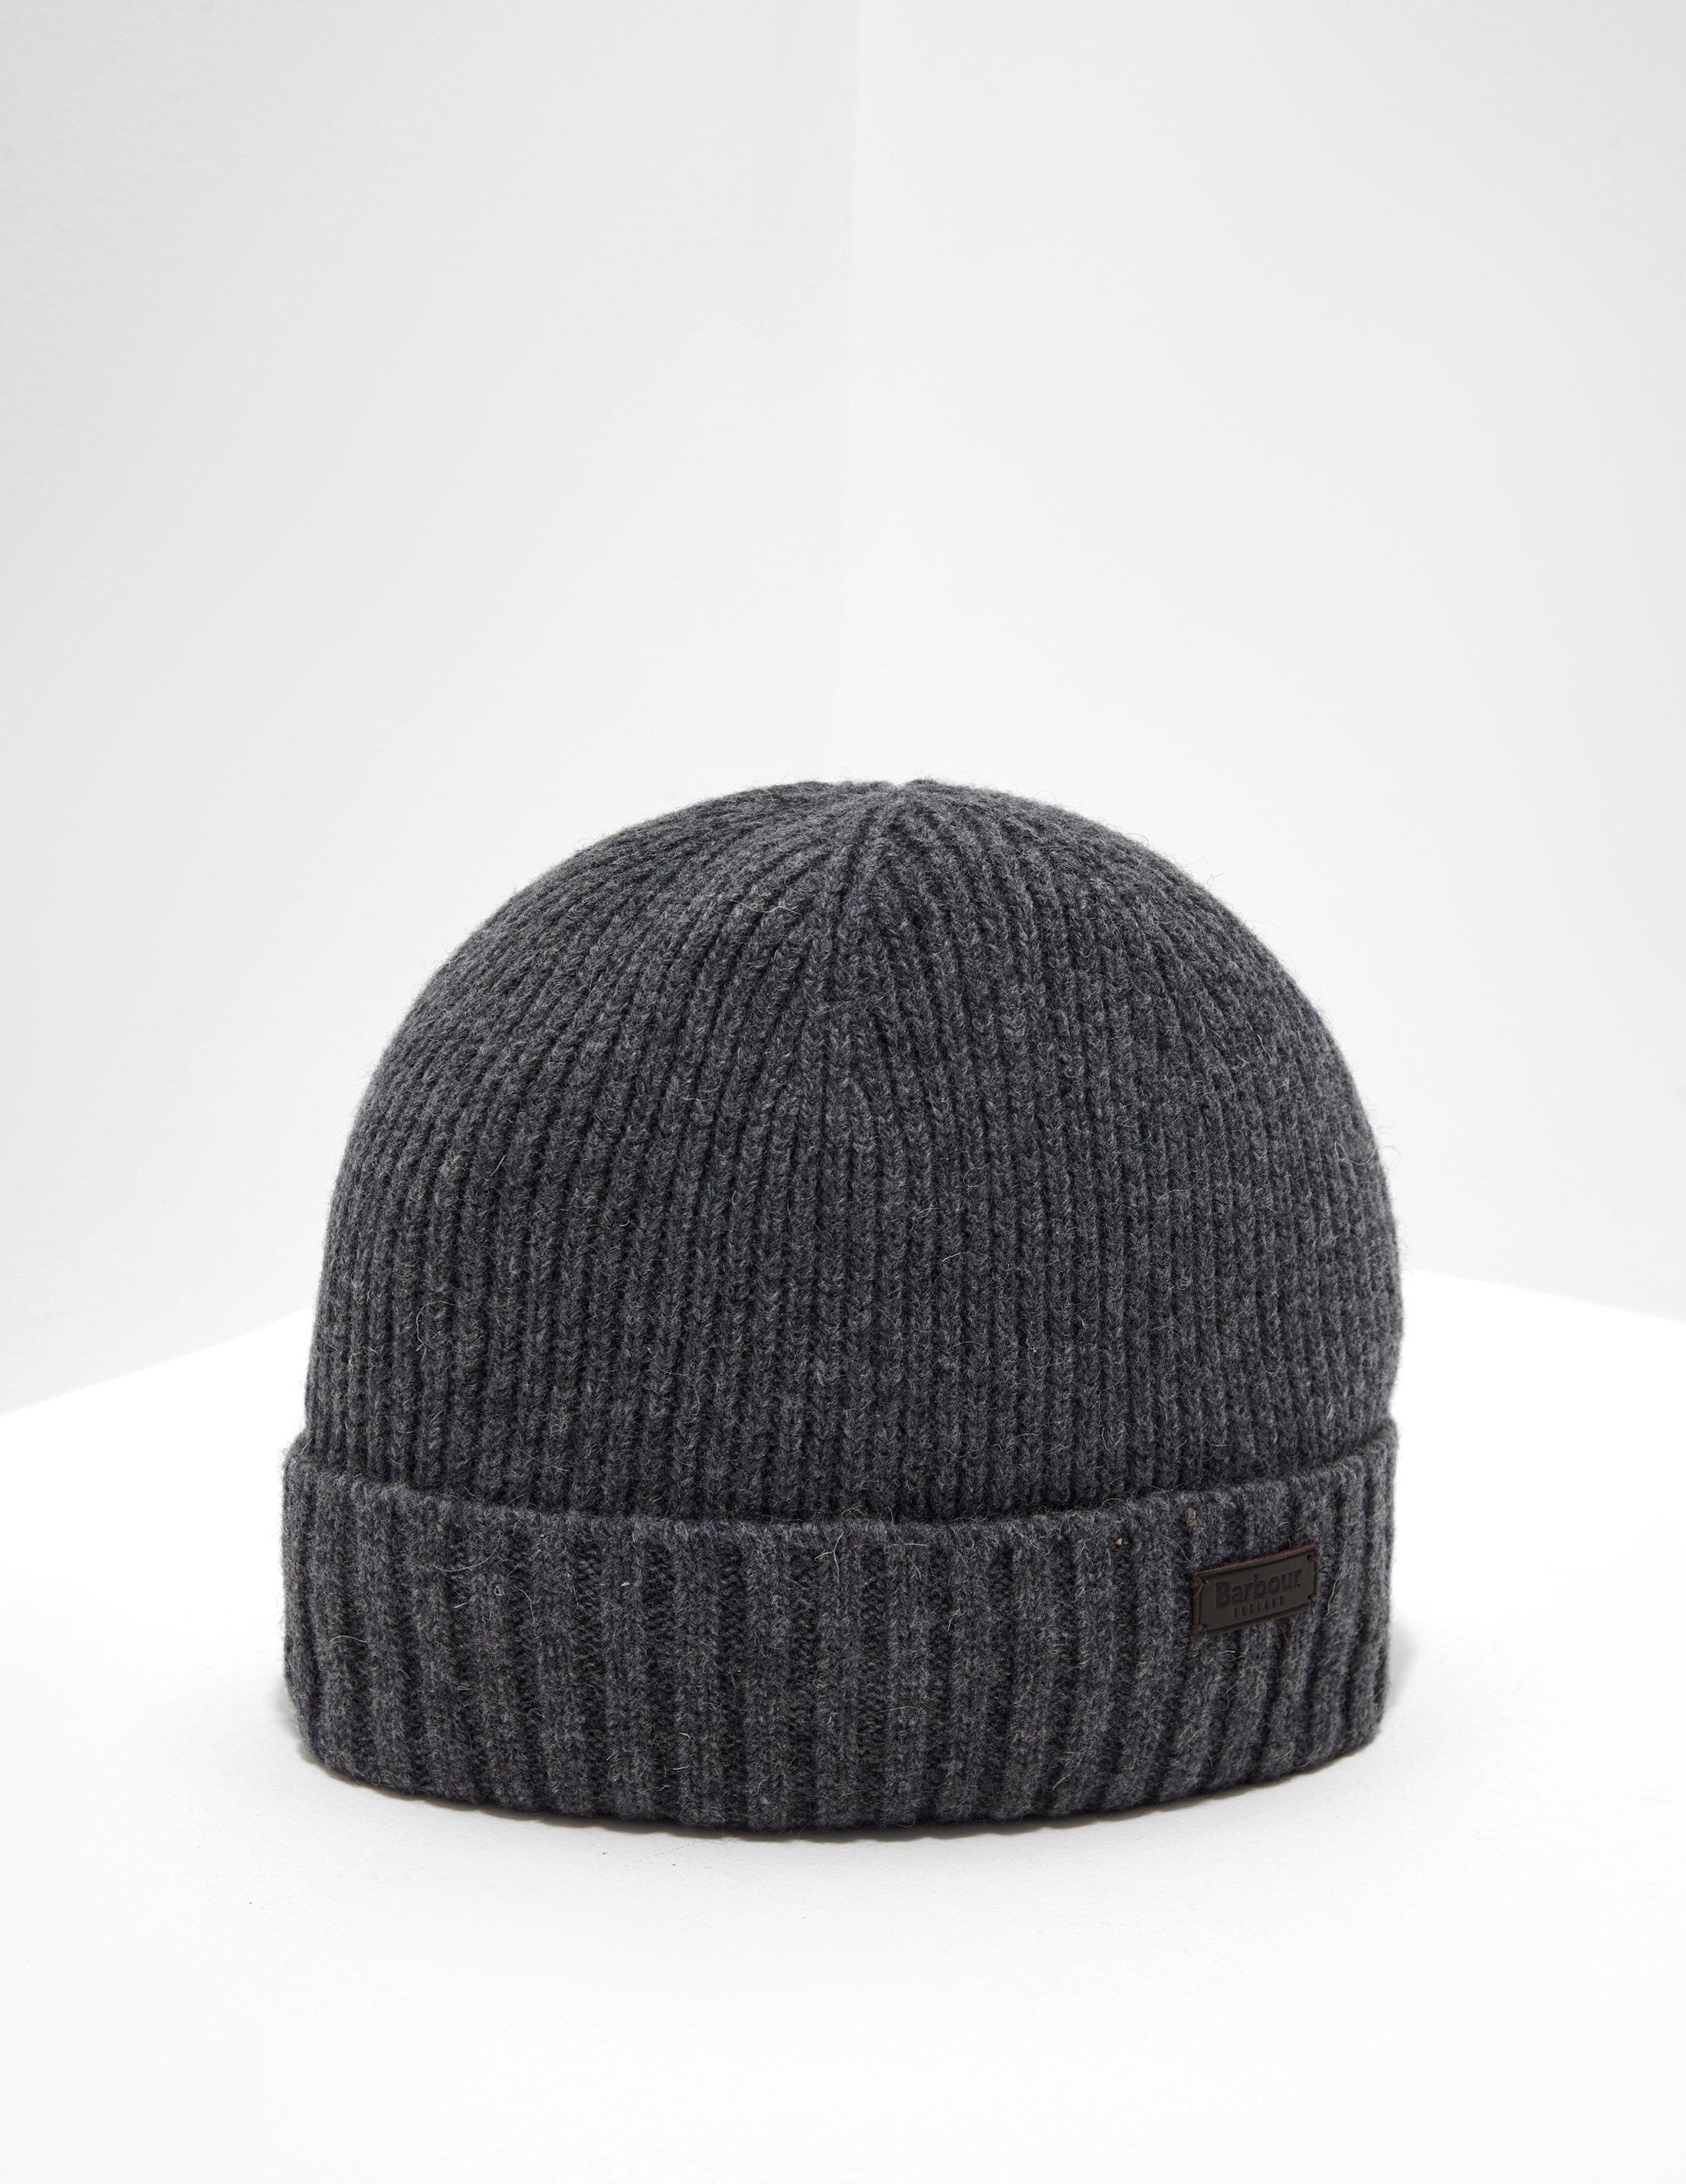 2f8ad4eb Barbour Calton Beanie Grey in Gray for Men - Lyst